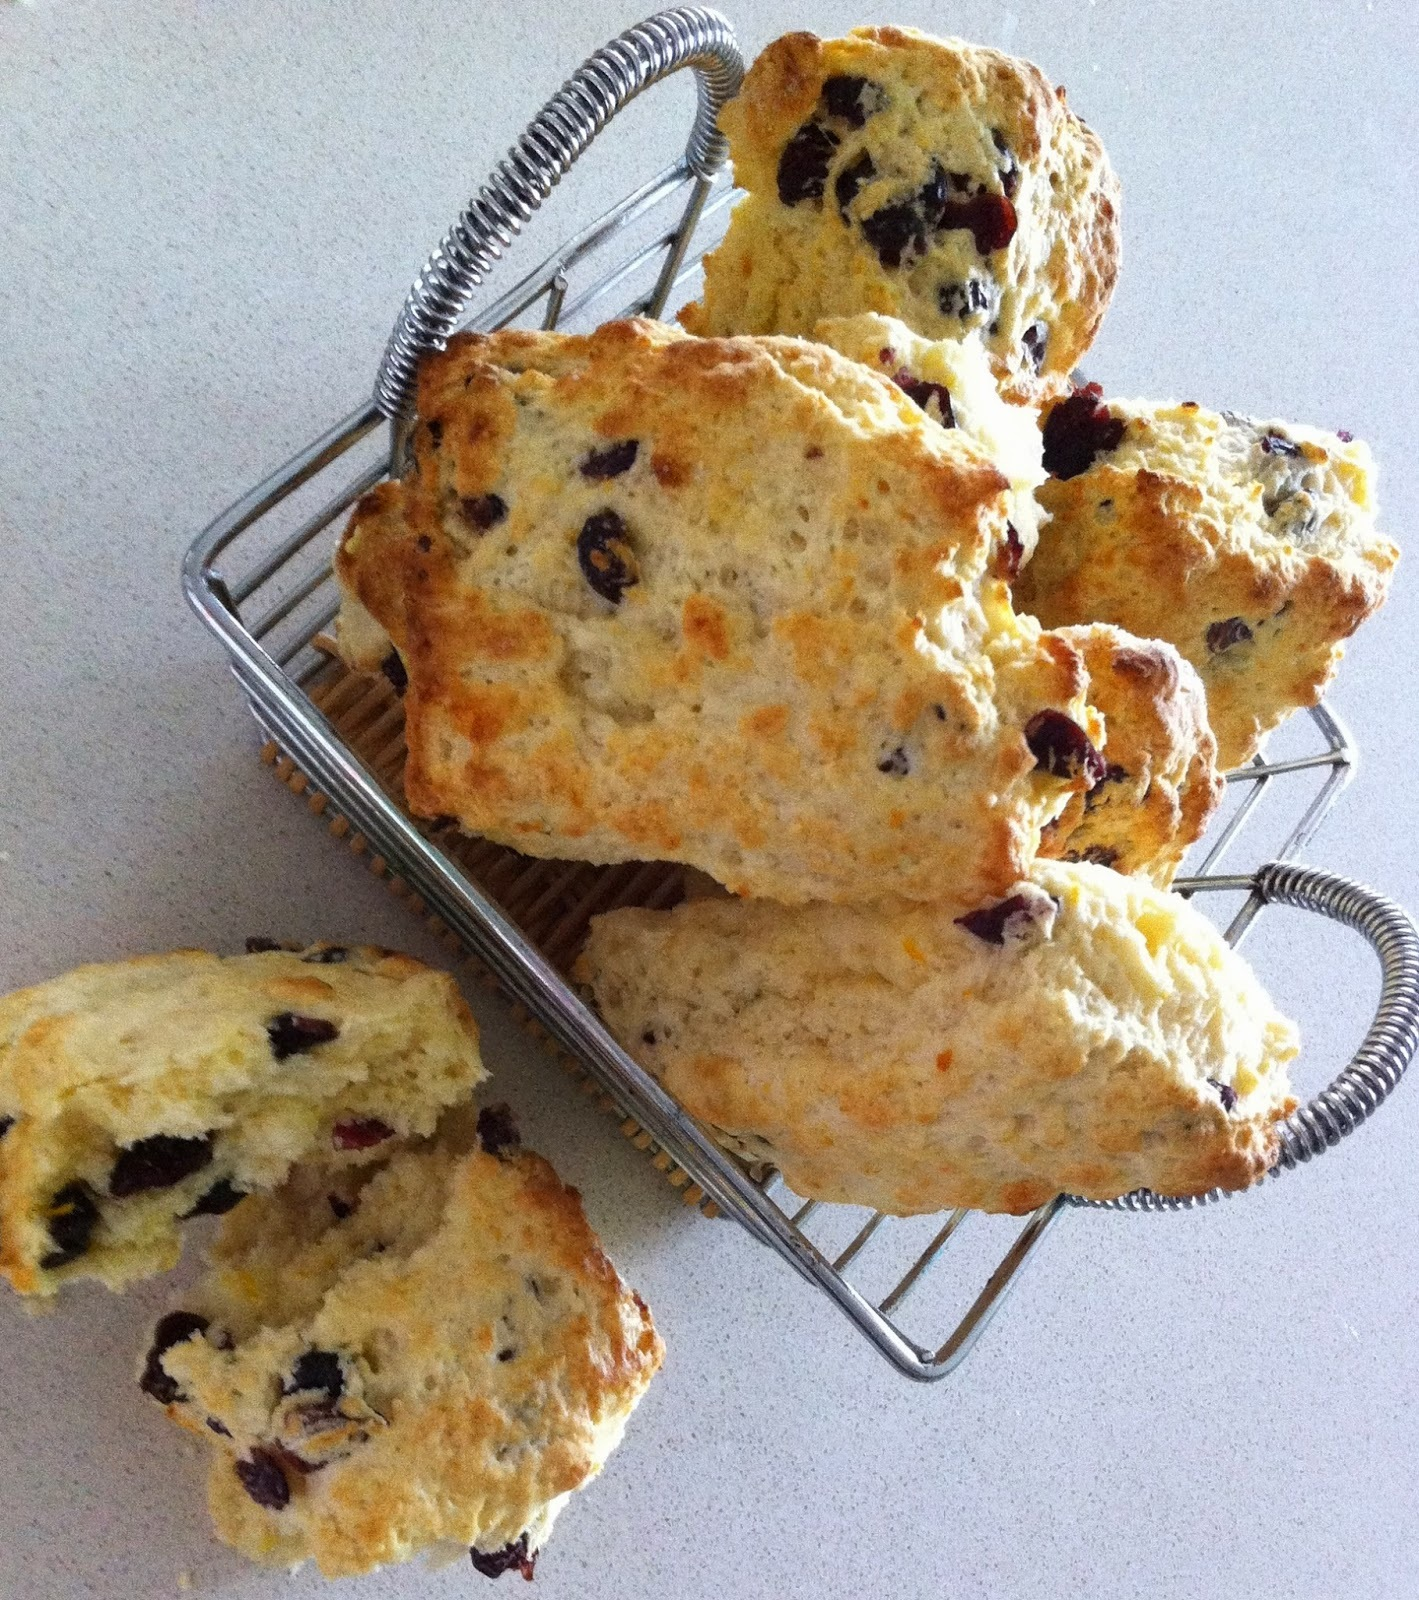 Seriously Good Cheddar, Date/Craisin and Orange Flaky Scones